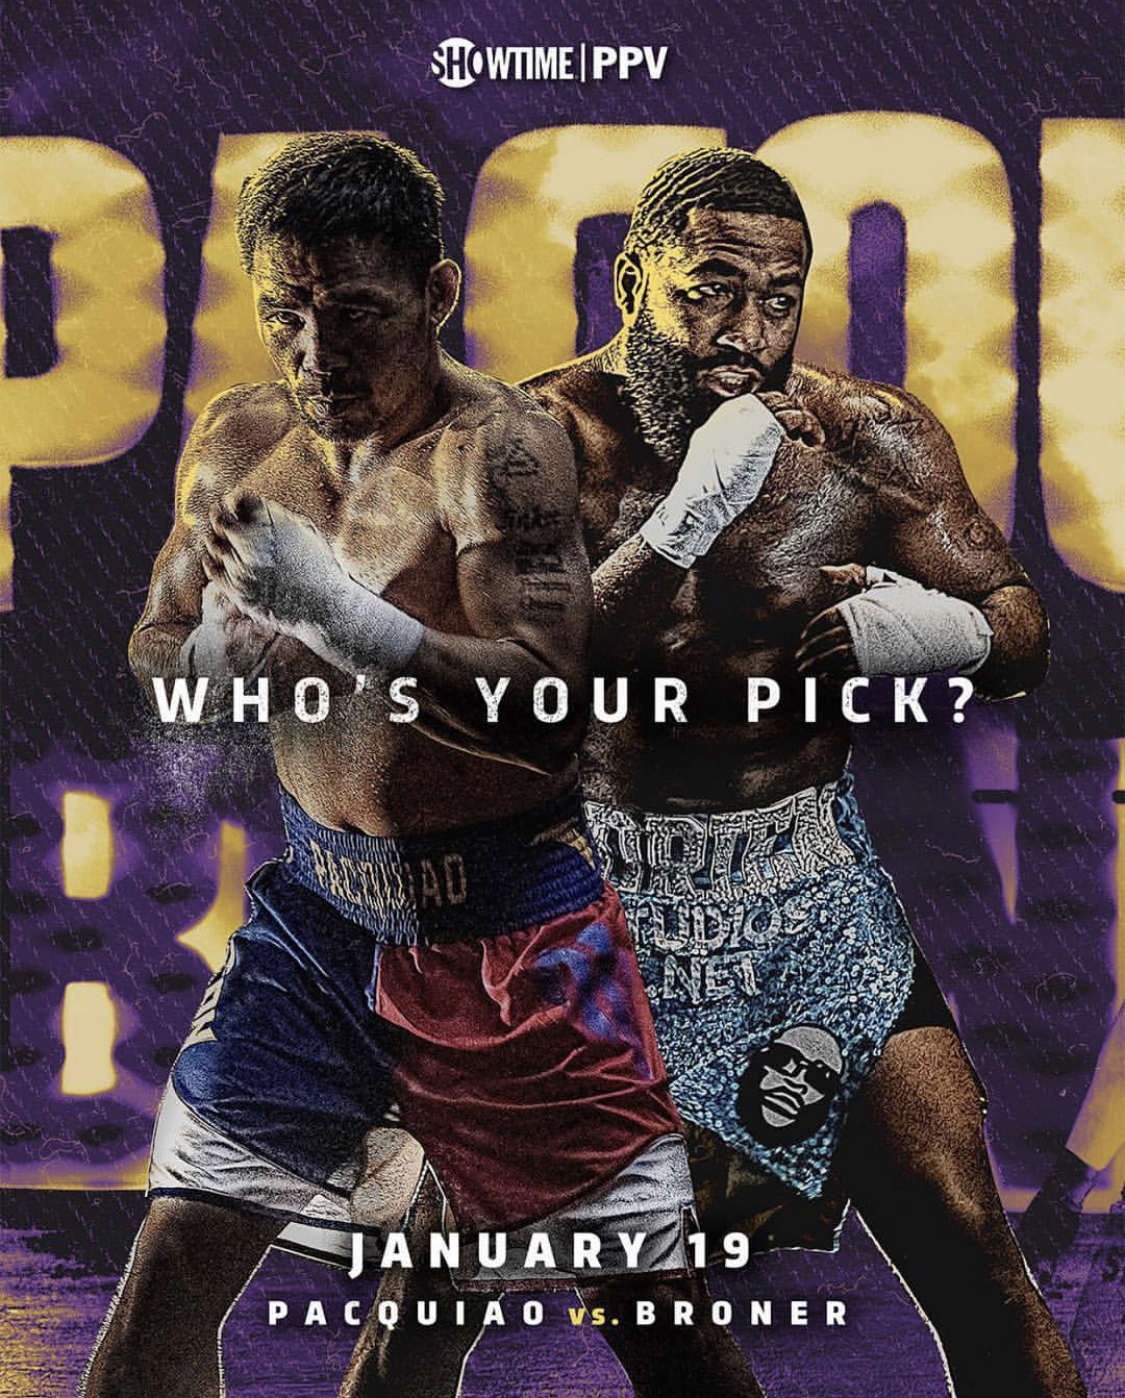 Showtime PPV Pacquiao Broner